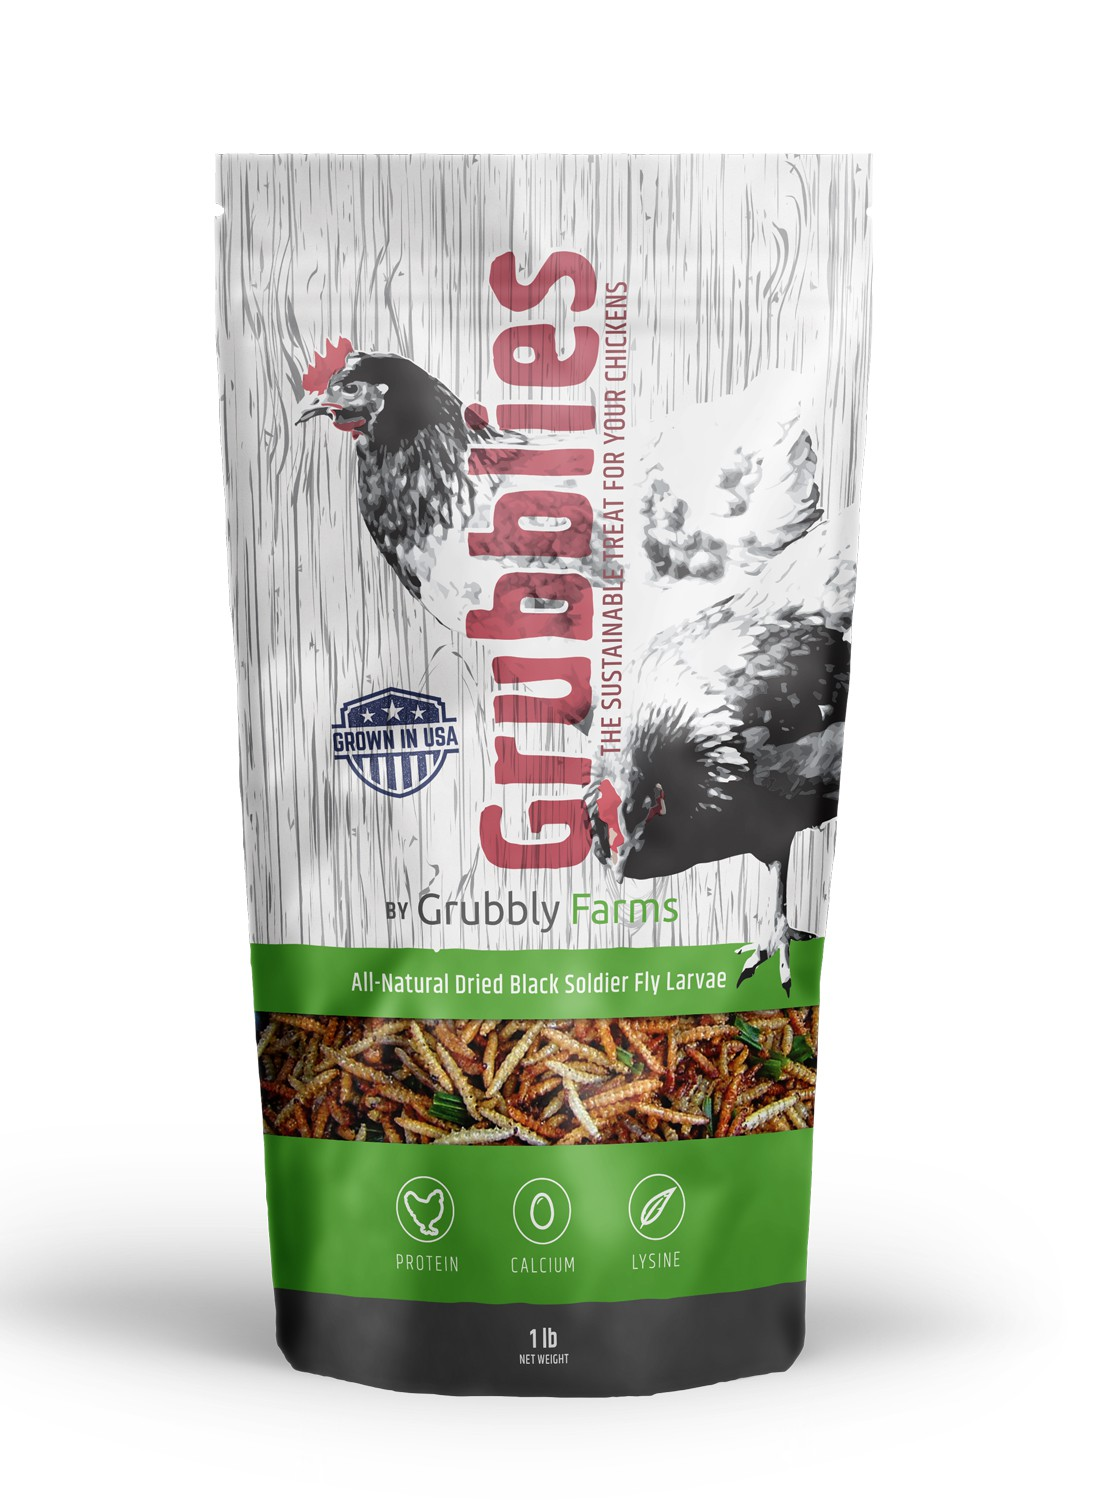 Awesome package needed for pet chicken treats!